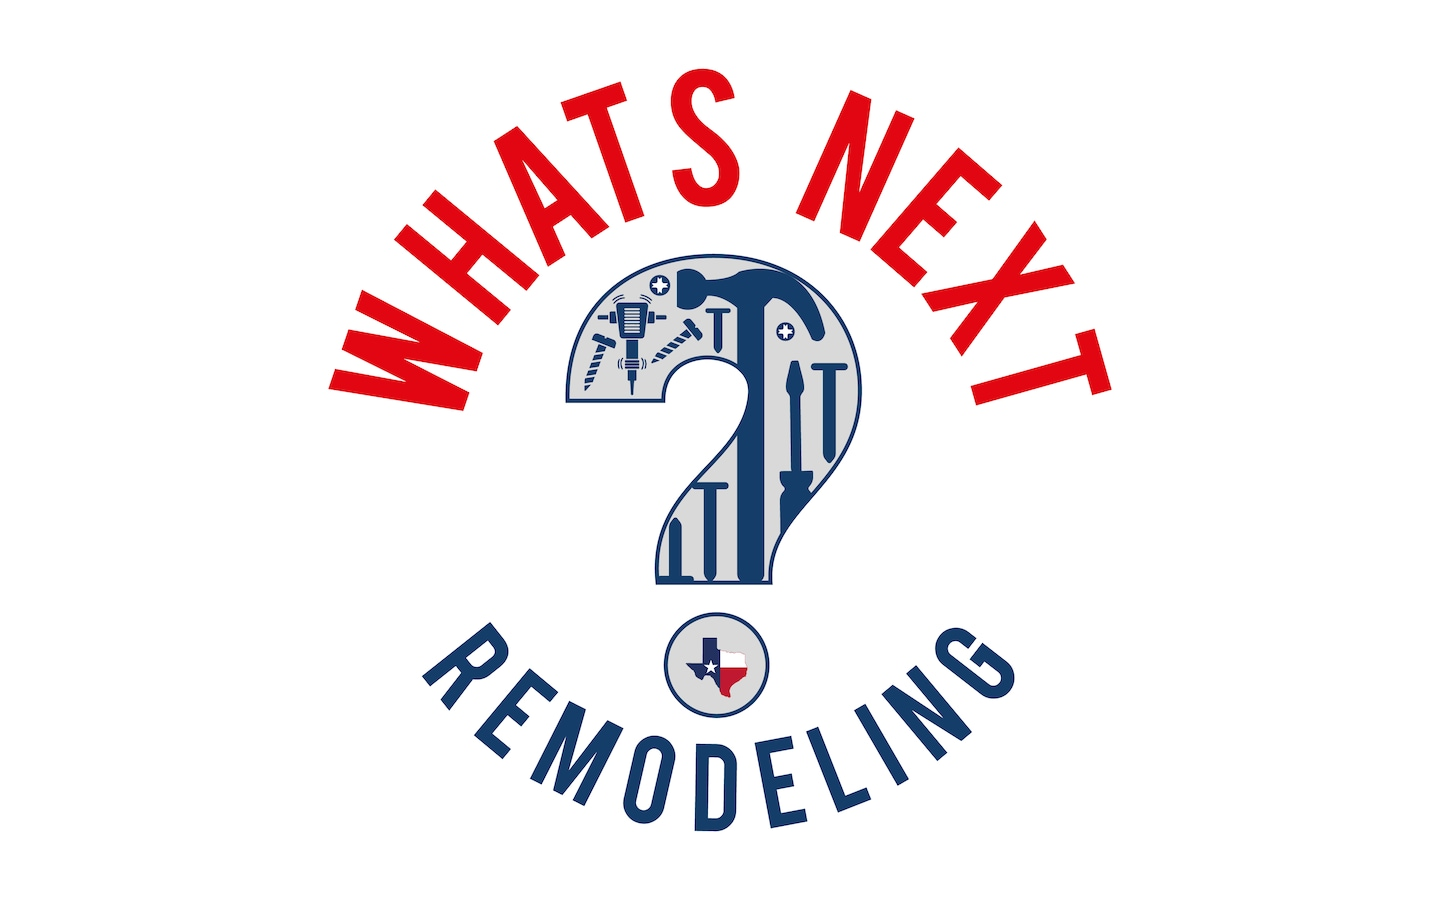 Whats Next Remodeling LLC